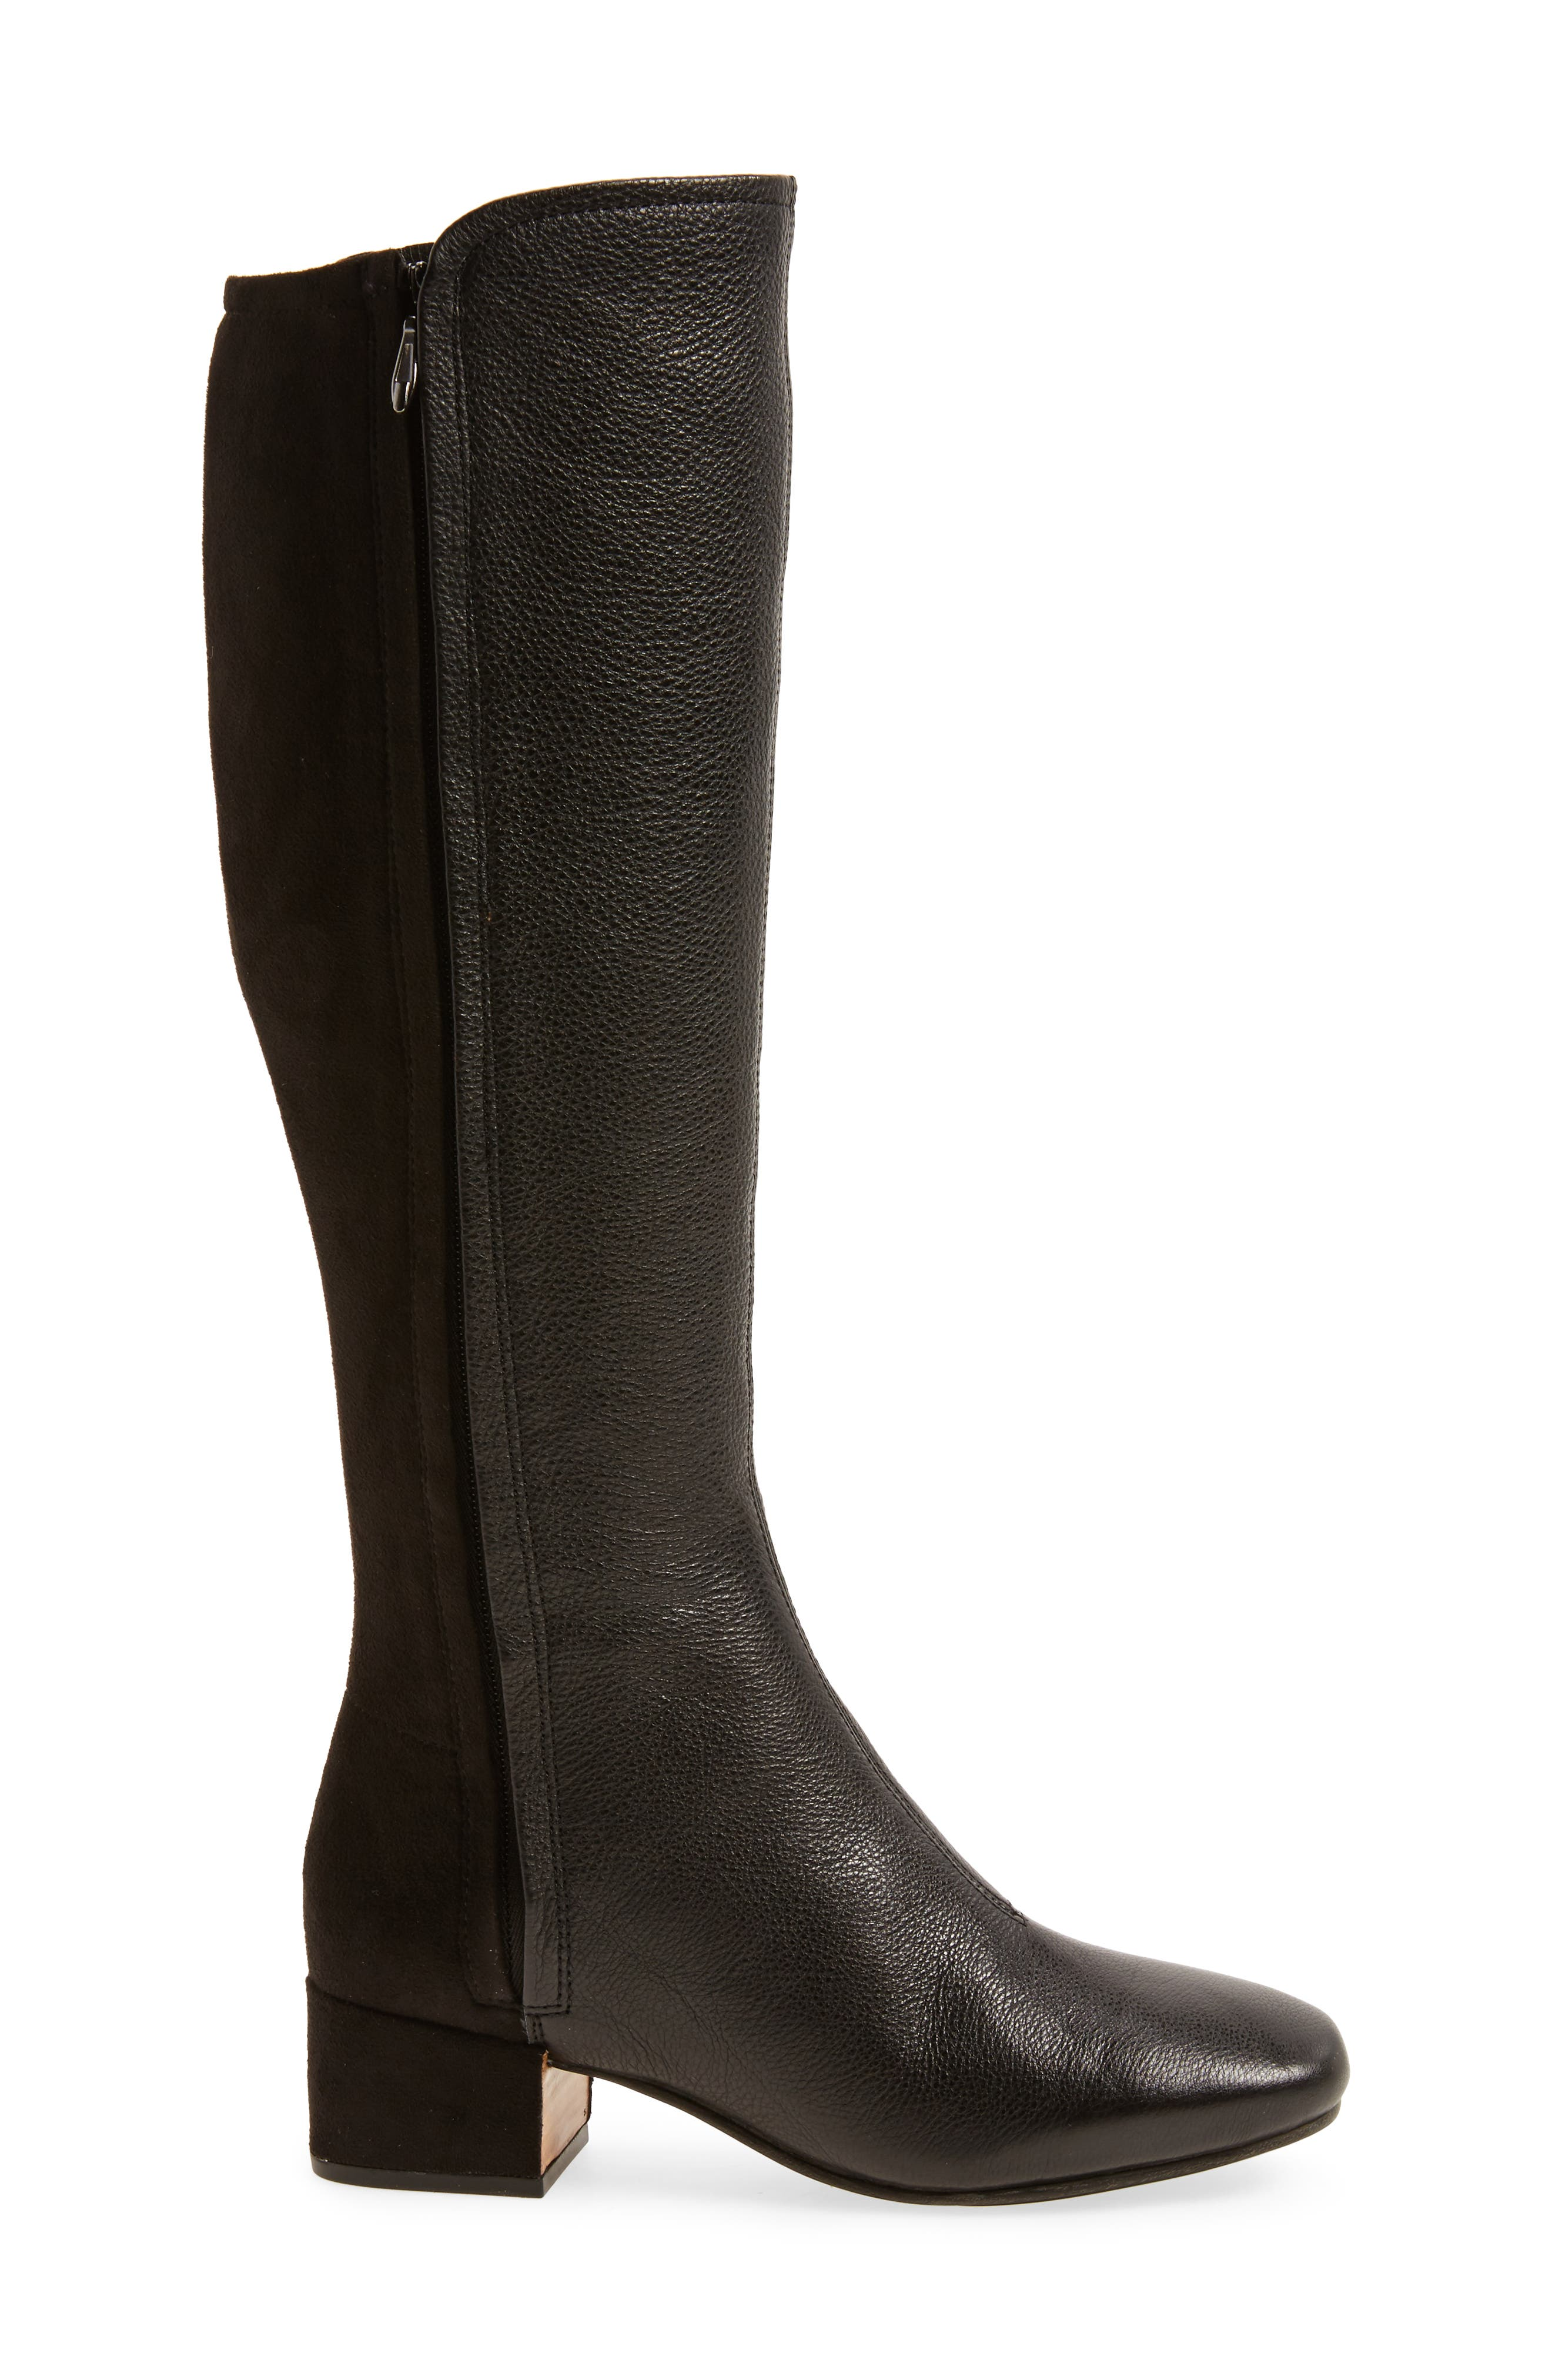 GENTLE SOULS BY KENNETH COLE,                             Ella-Seti Knee High Boot,                             Alternate thumbnail 3, color,                             001